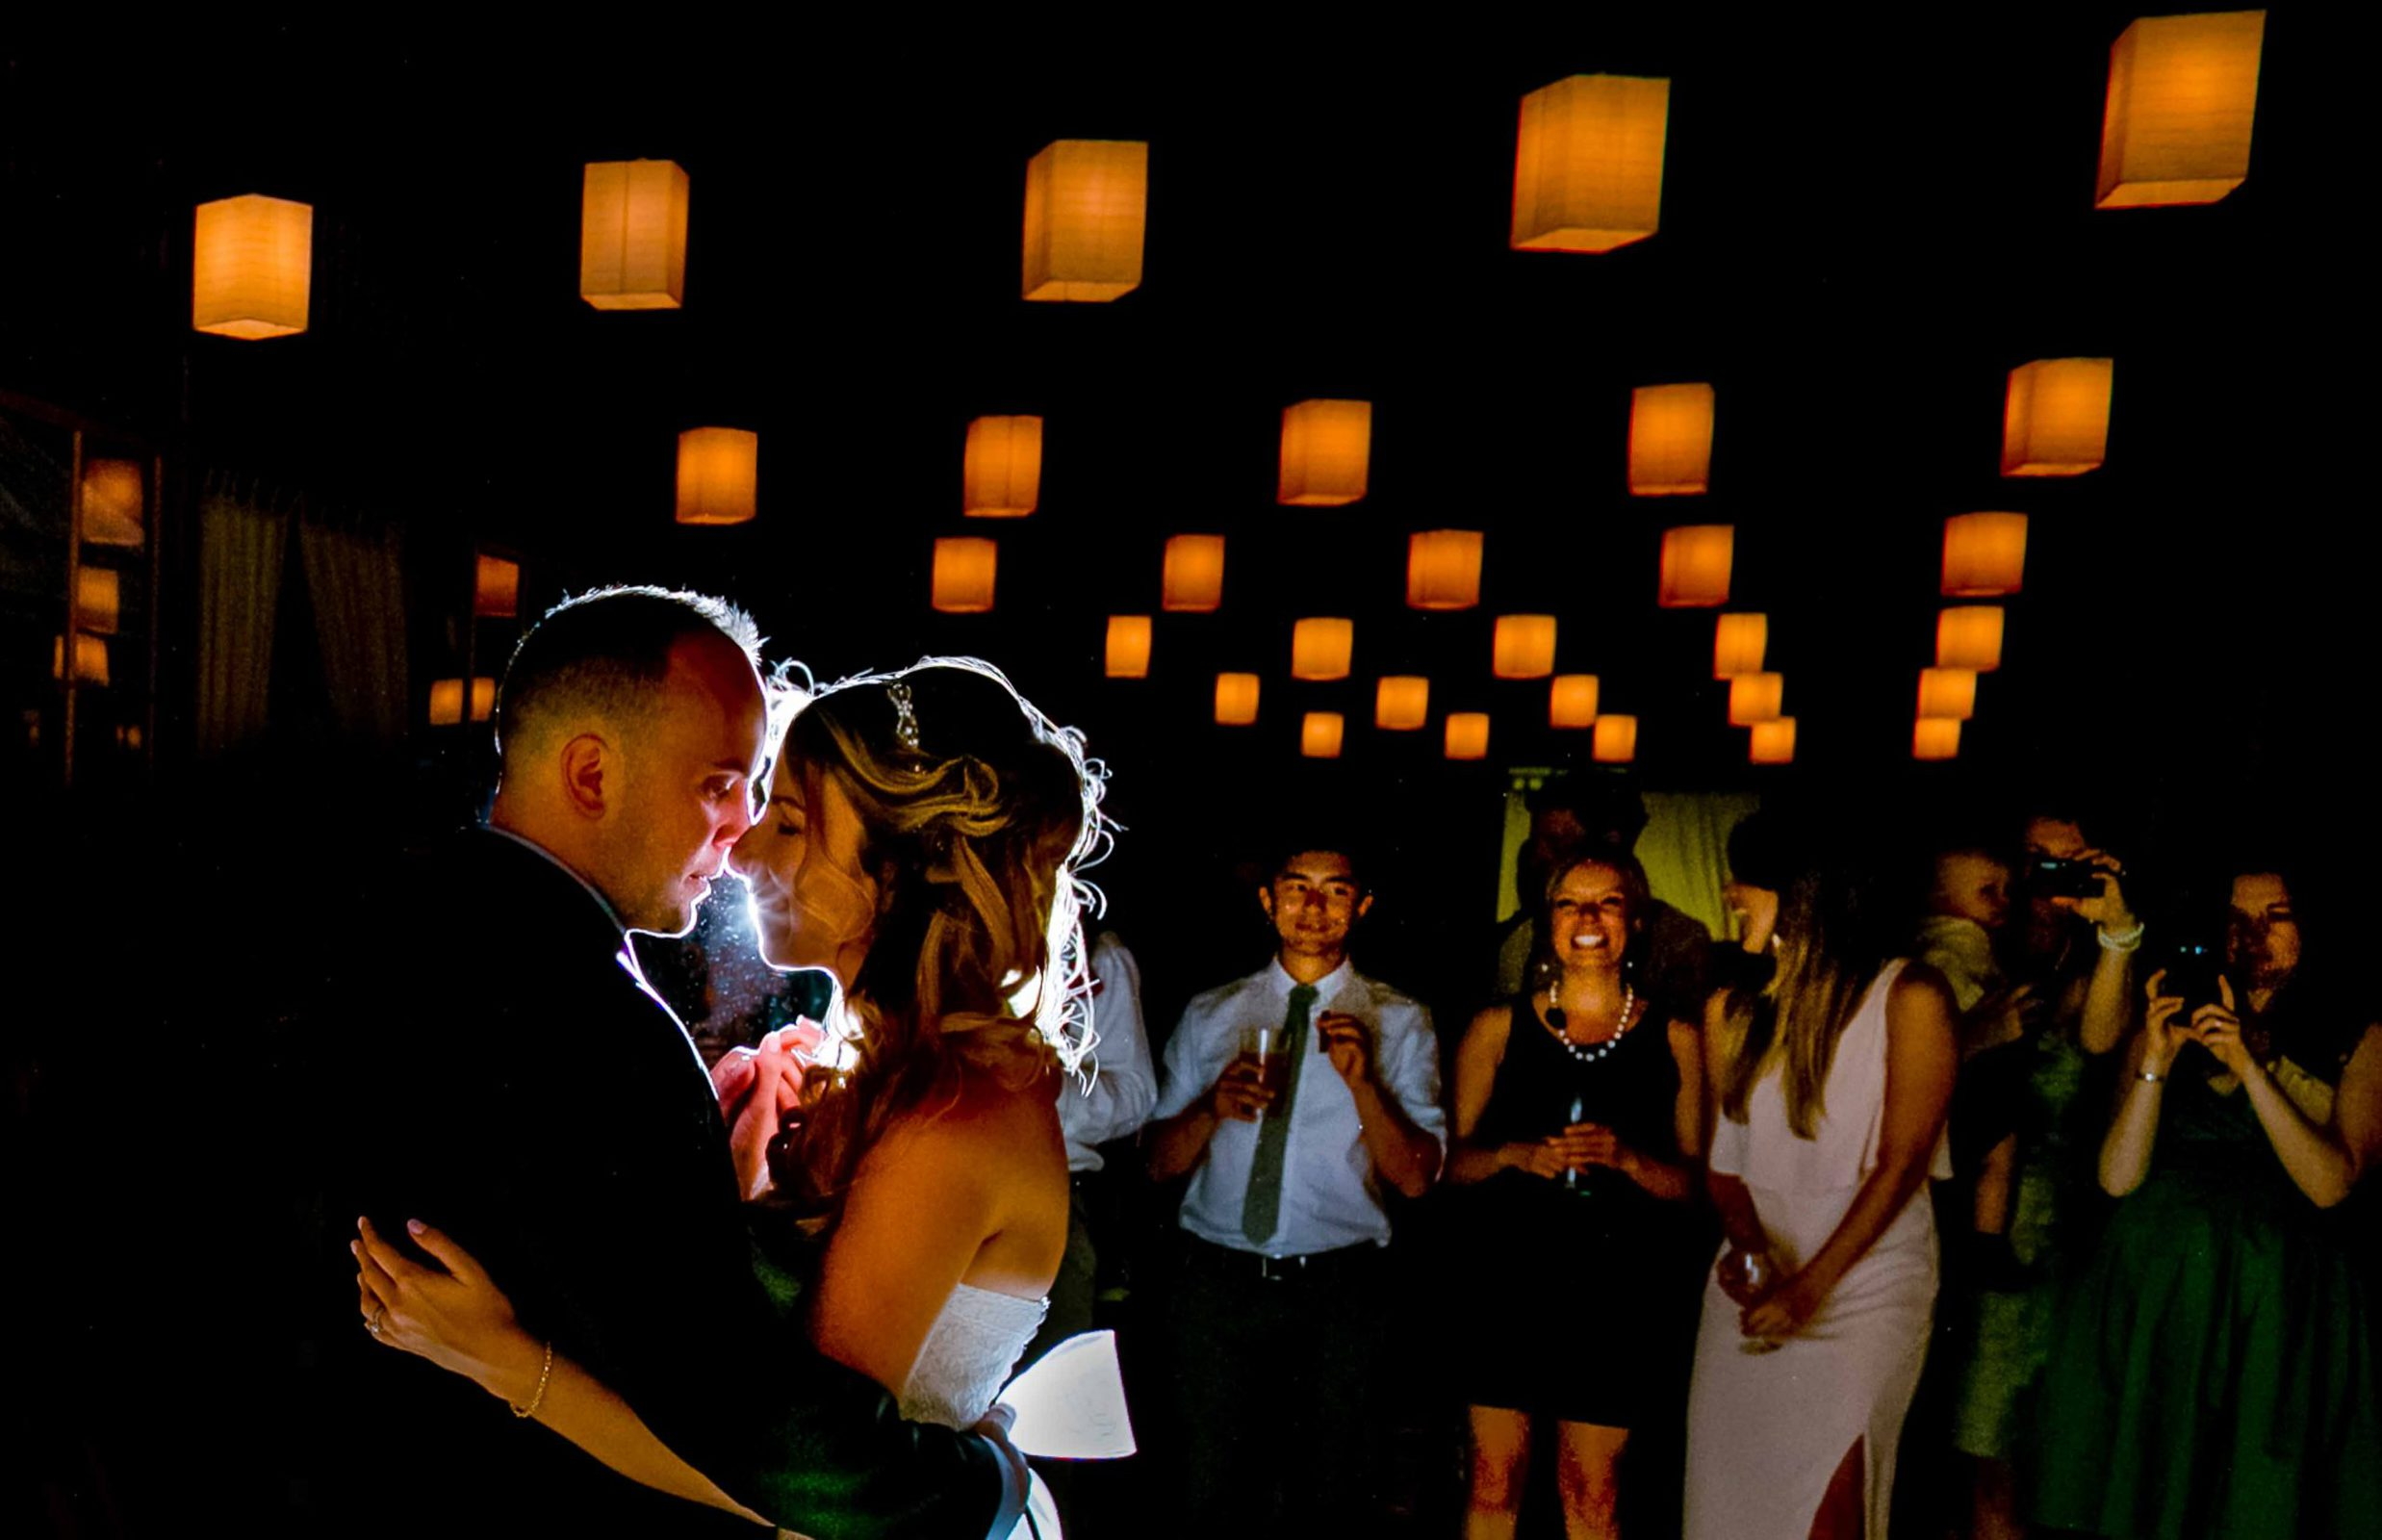 Beautiful first dance photo of a bride and groom with guests and warm lights during their Mt Hood Organic Farms wedding reception in Hood River, Oregon